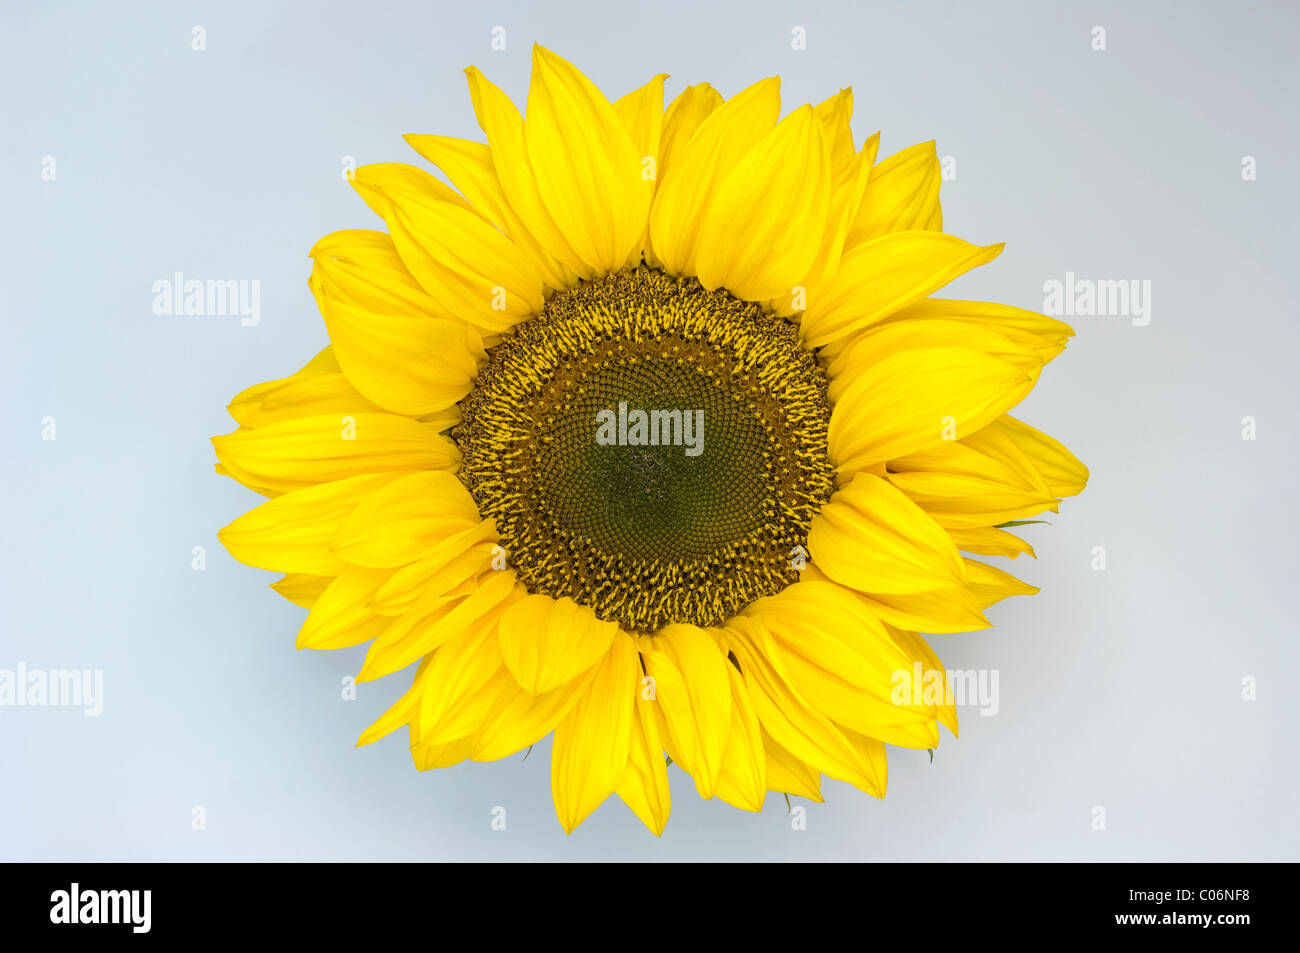 Sunflower (Helianthus annuus). Flower head. Studio picture against a white background. - Stock Image